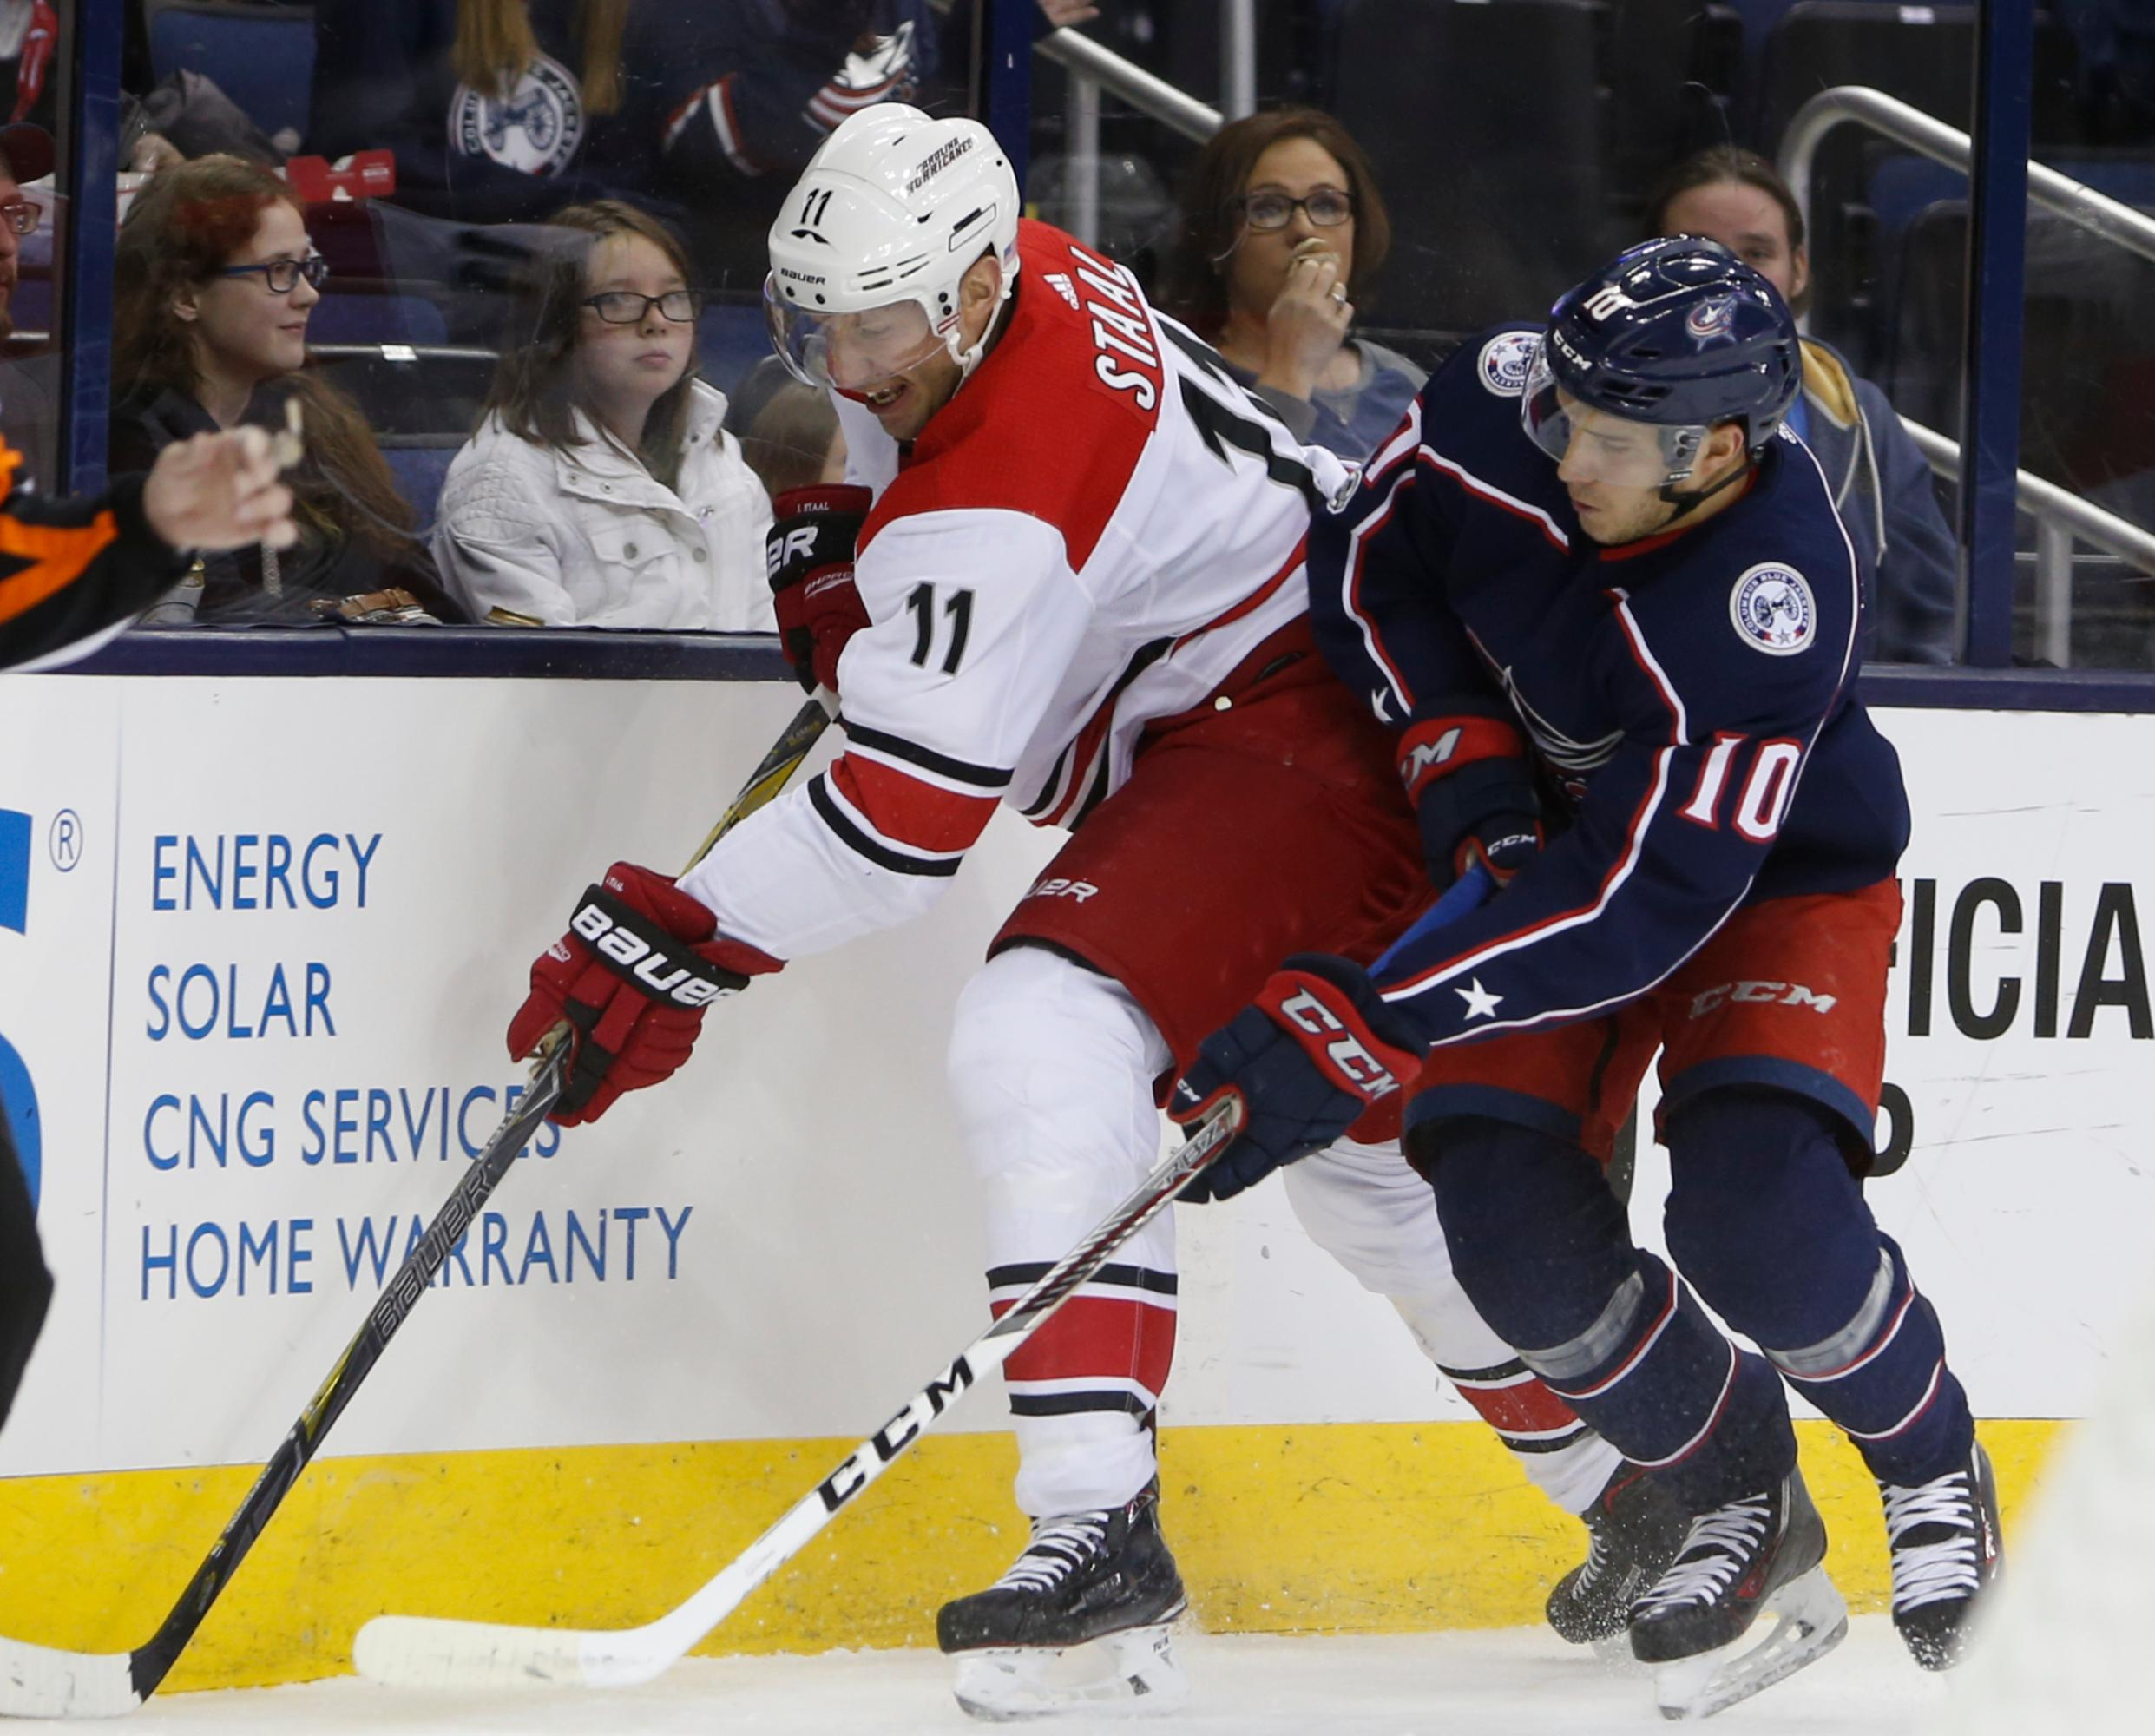 Carolina Hurricanes' Jordan Staal, left, and Columbus Blue Jackets' Alexander Wennberg, of Sweden, reach for the puck during the first period of an NHL hockey game Friday, Nov. 10, 2017, in Columbus, Ohio. (AP Photo/Jay LaPrete)